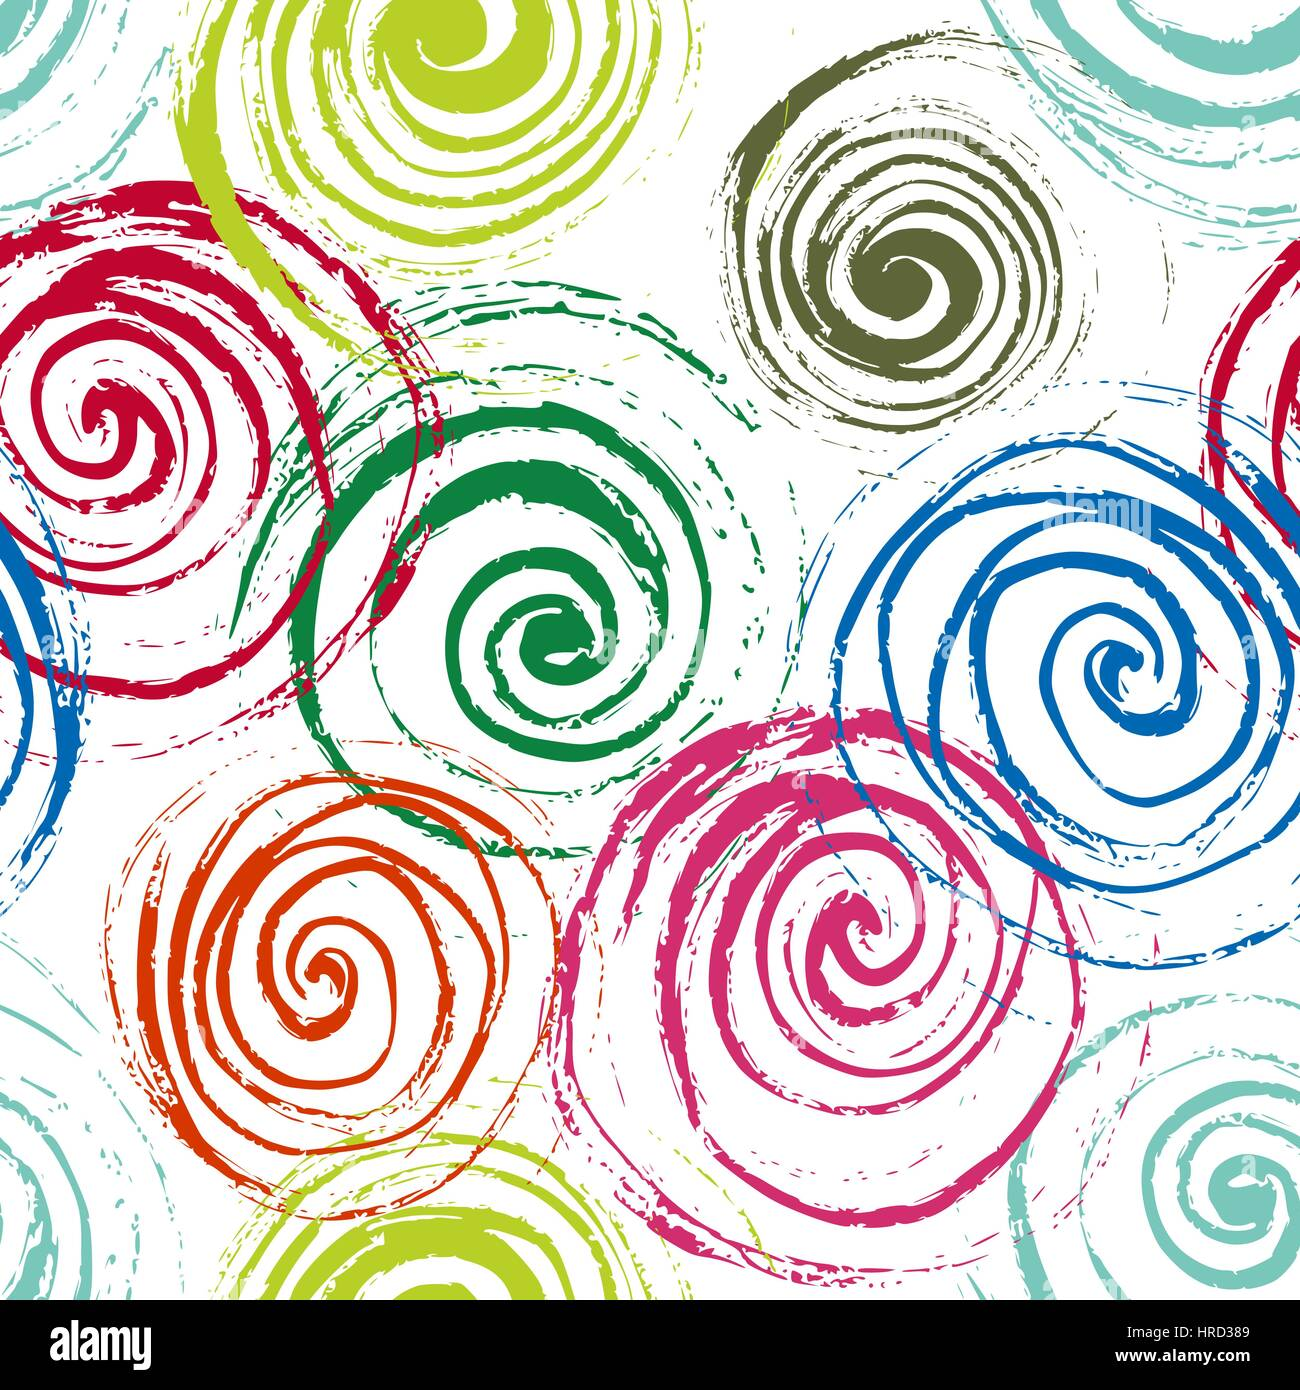 Swirl seamless pattern  Hand drawn spirals, free layout  Colors of